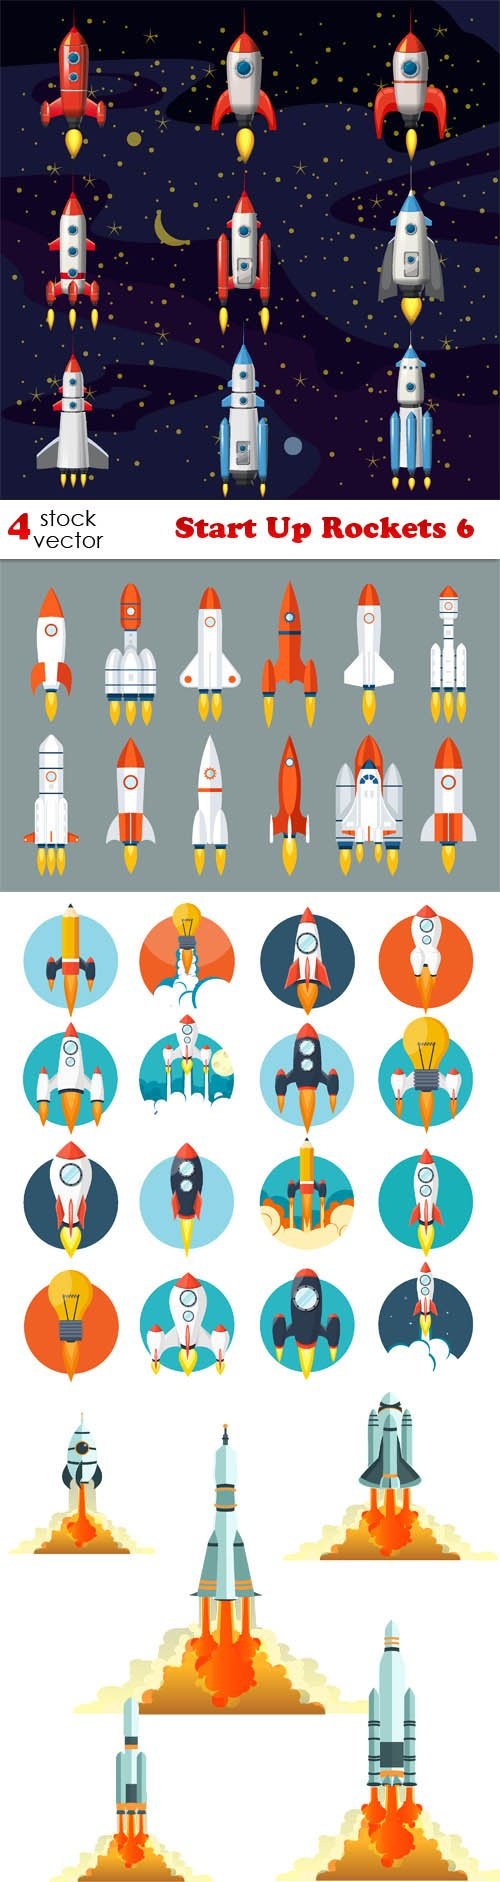 Vectors - Start Up Rockets 6